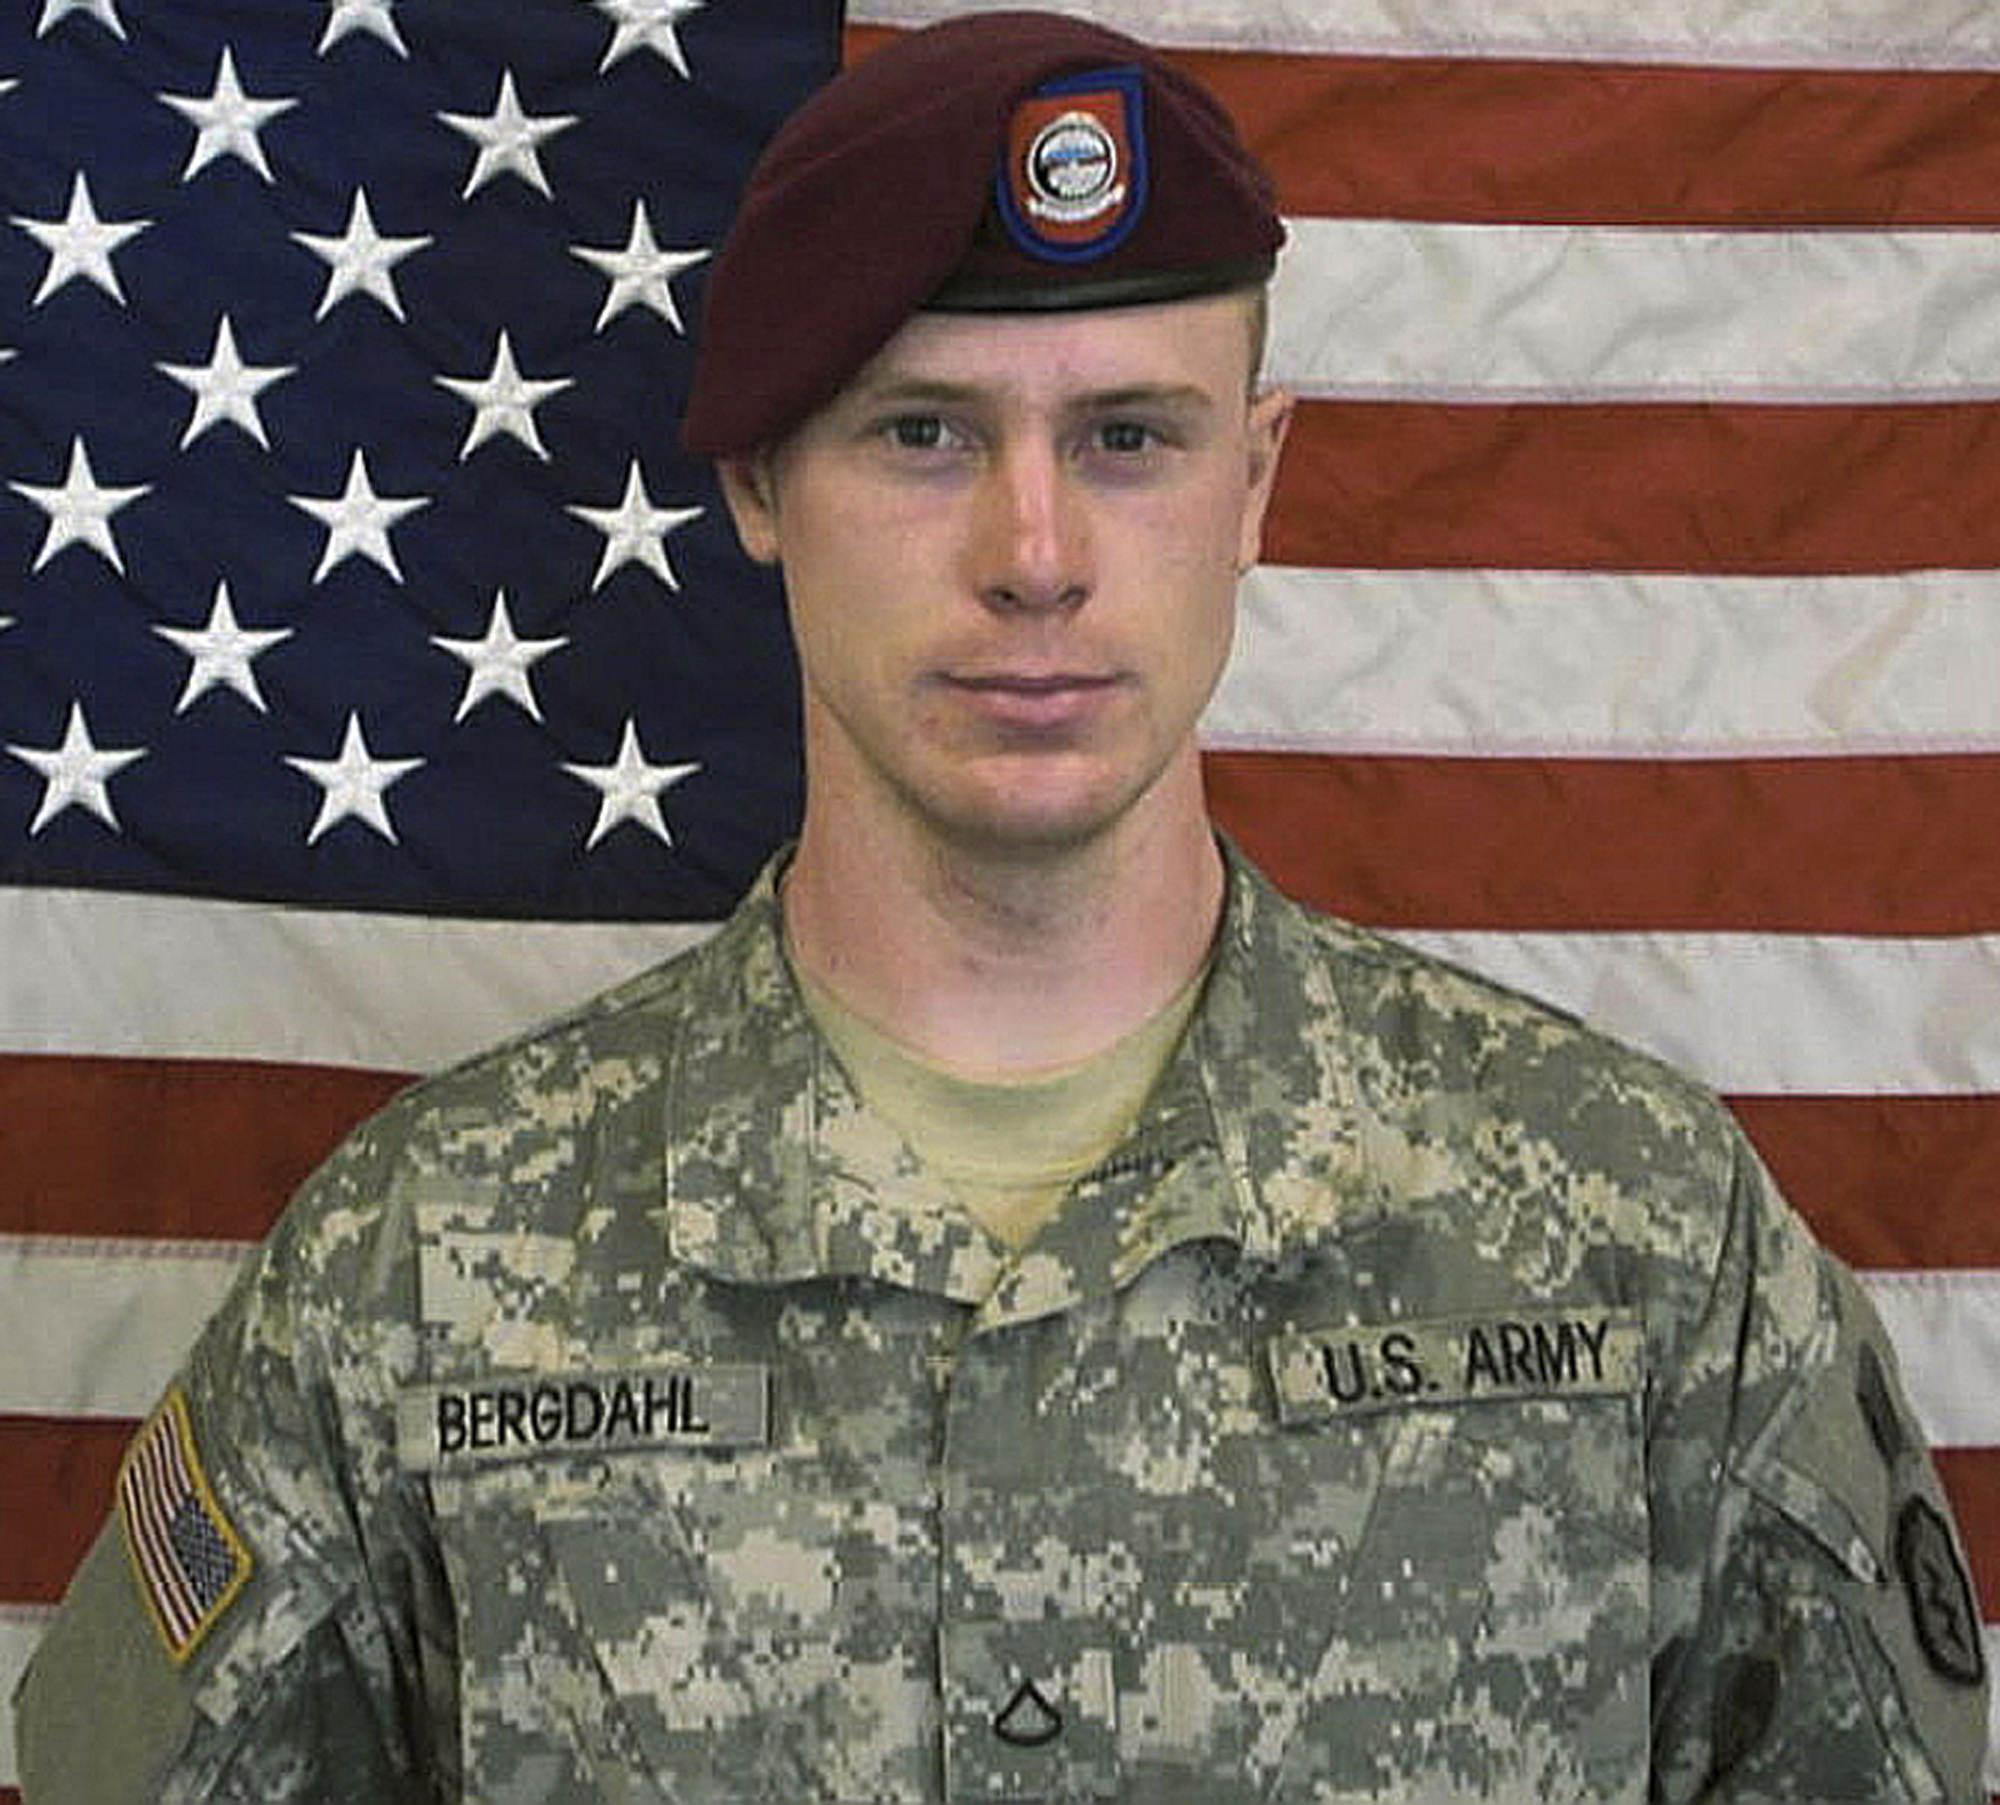 This undated file image provided by the U.S. Army shows Sgt. Bowe Bergdahl. The attorney for Bergdahl, who was released in exchange for five Taliban detainees from Guantanamo Bay, says the soldier's case has been referred for trial by a general court-martial.  (AP Photo/U.S. Army, File)